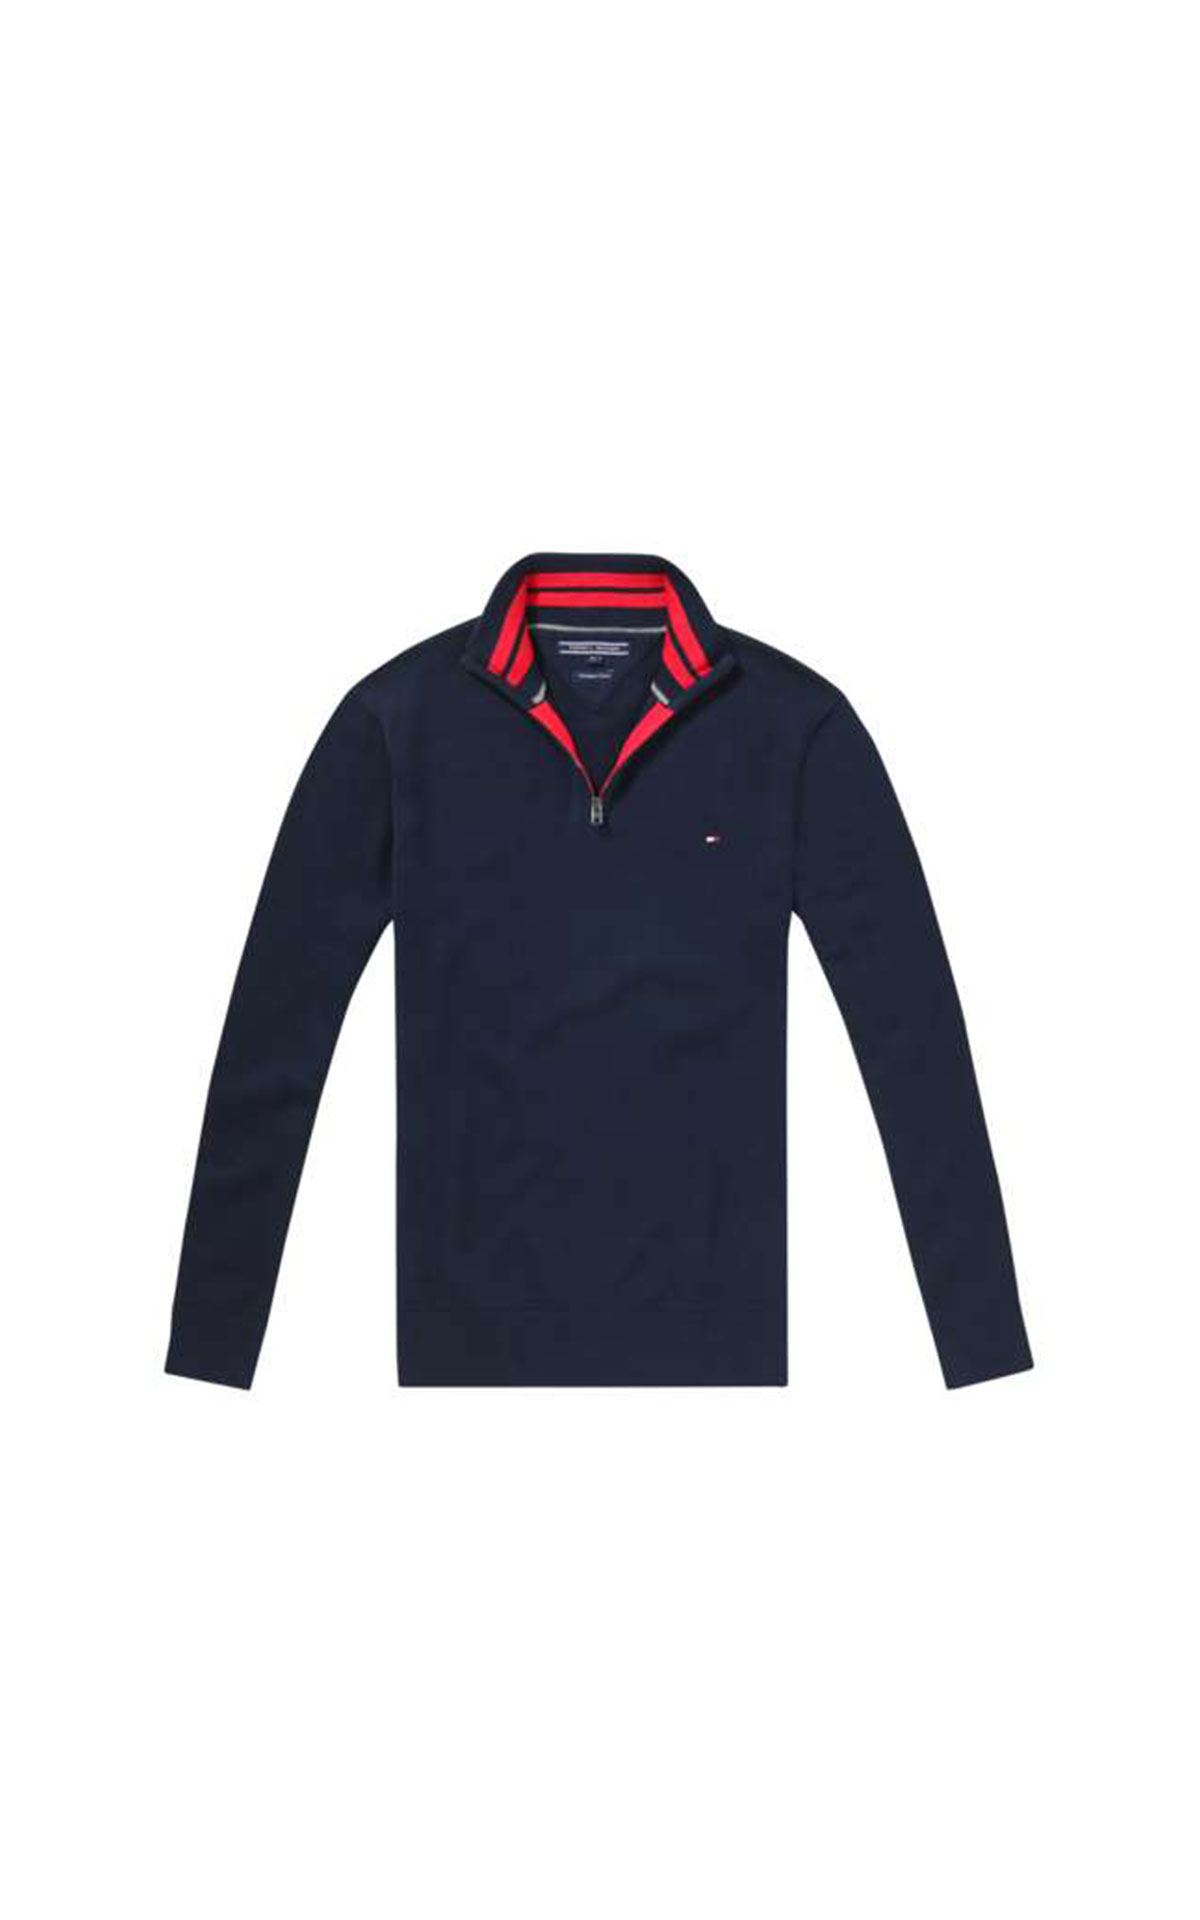 Tommy Hilfiger Men's Atlantic Zip Mock Neck at The Bicester Village Shopping Collection